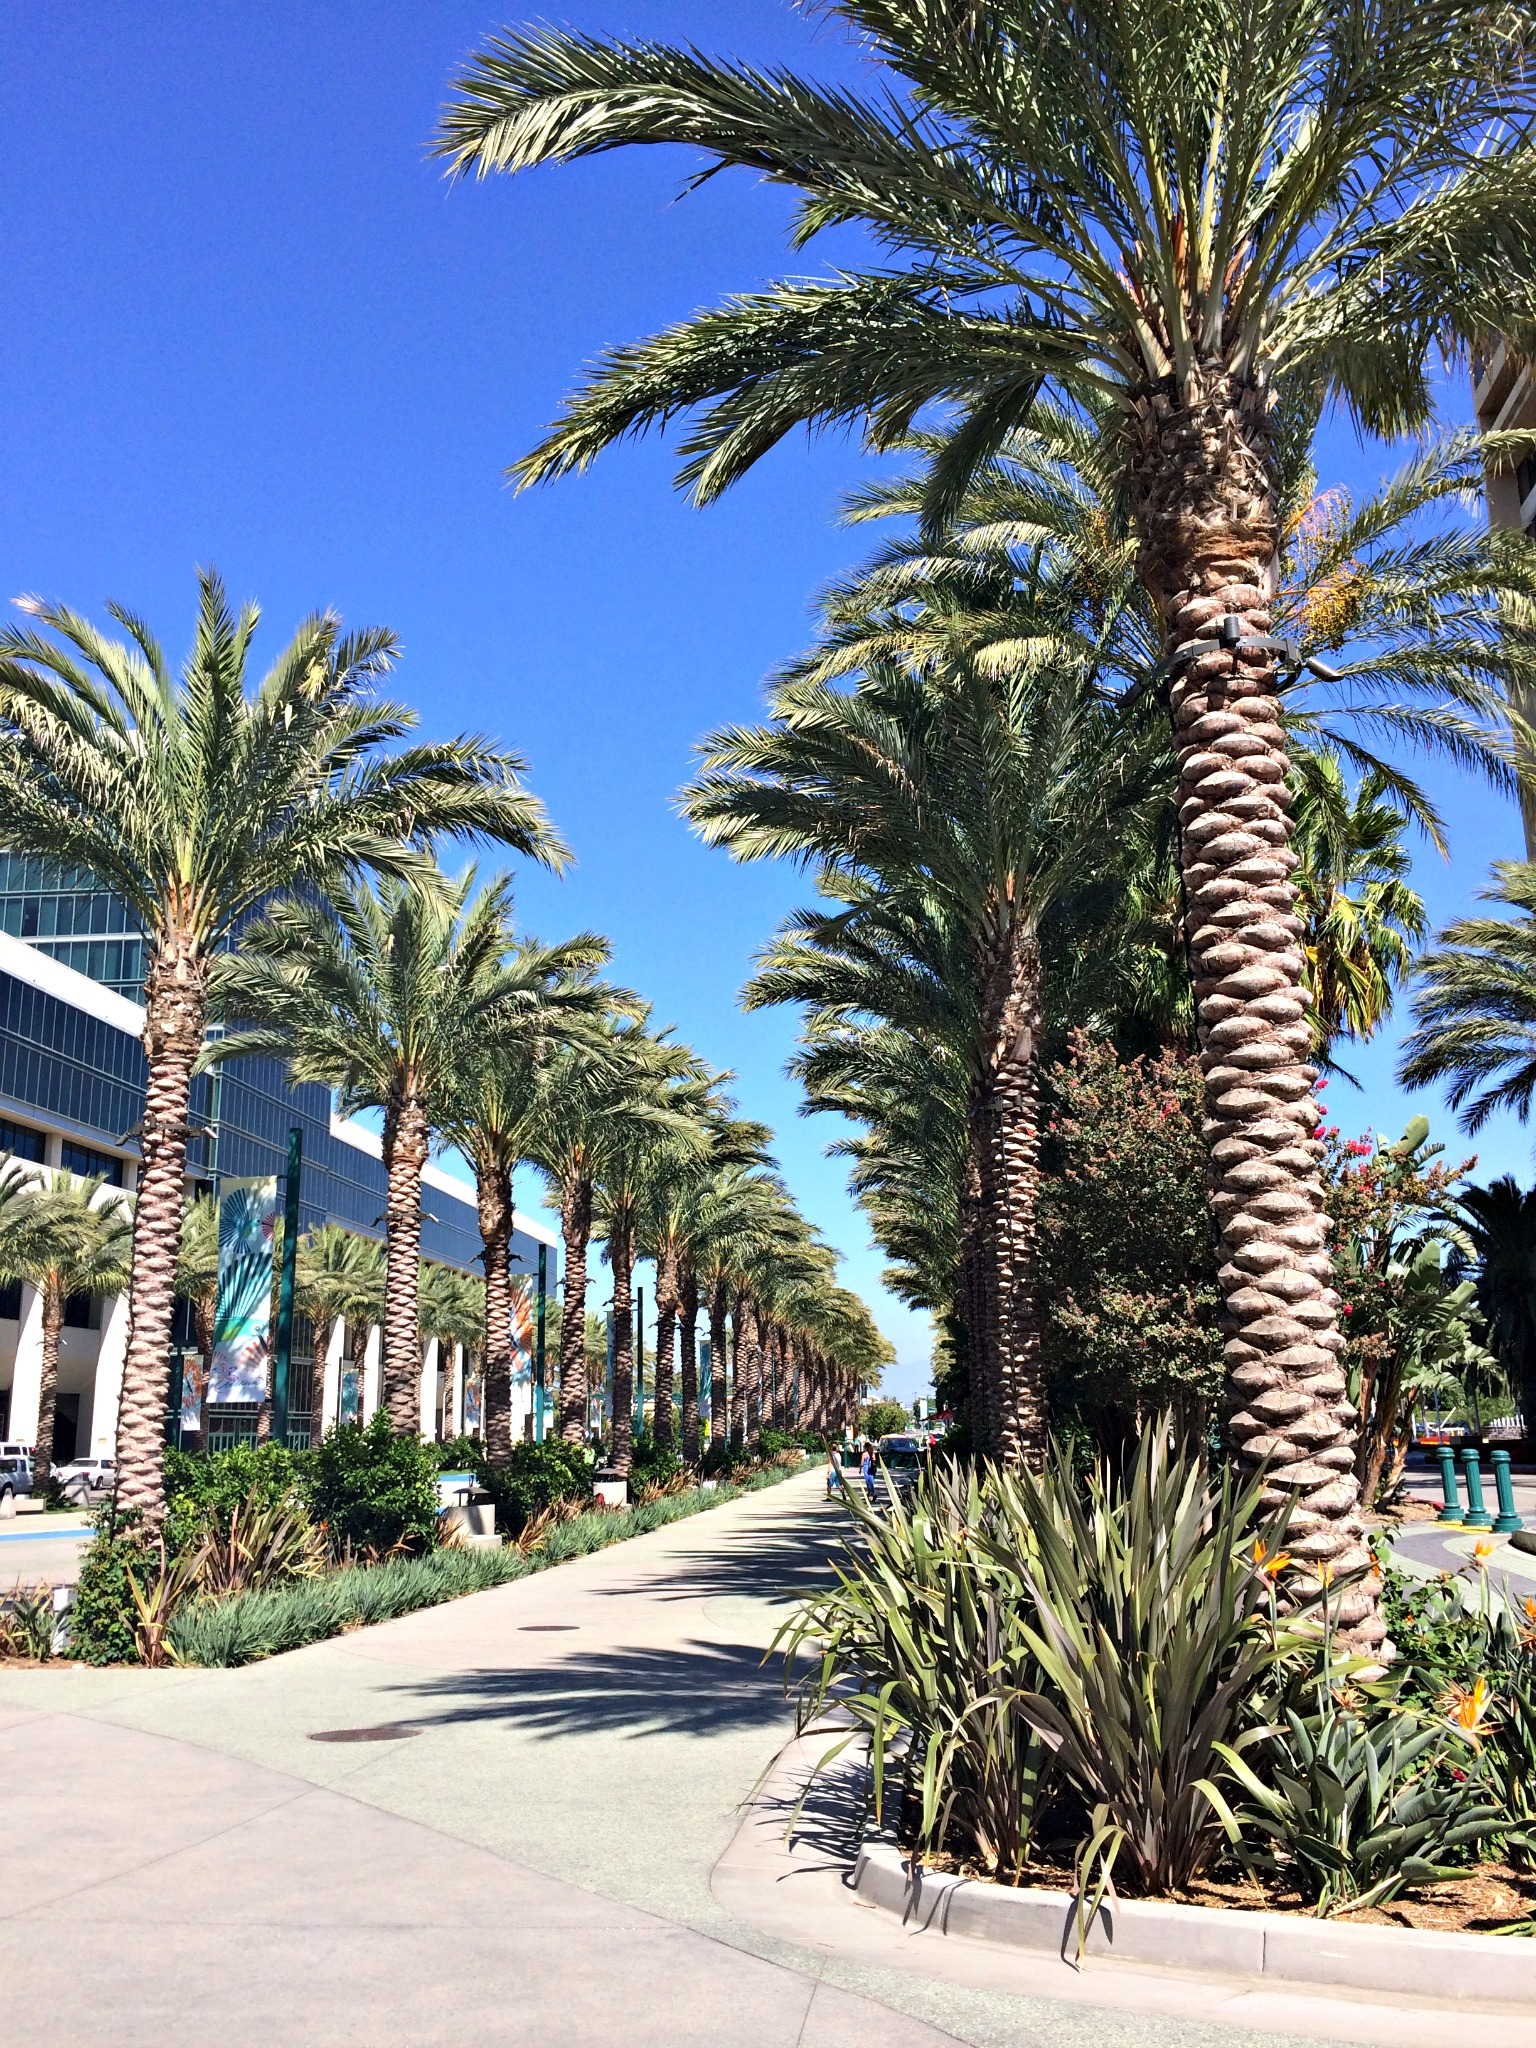 Anaheim Convention Center palm trees